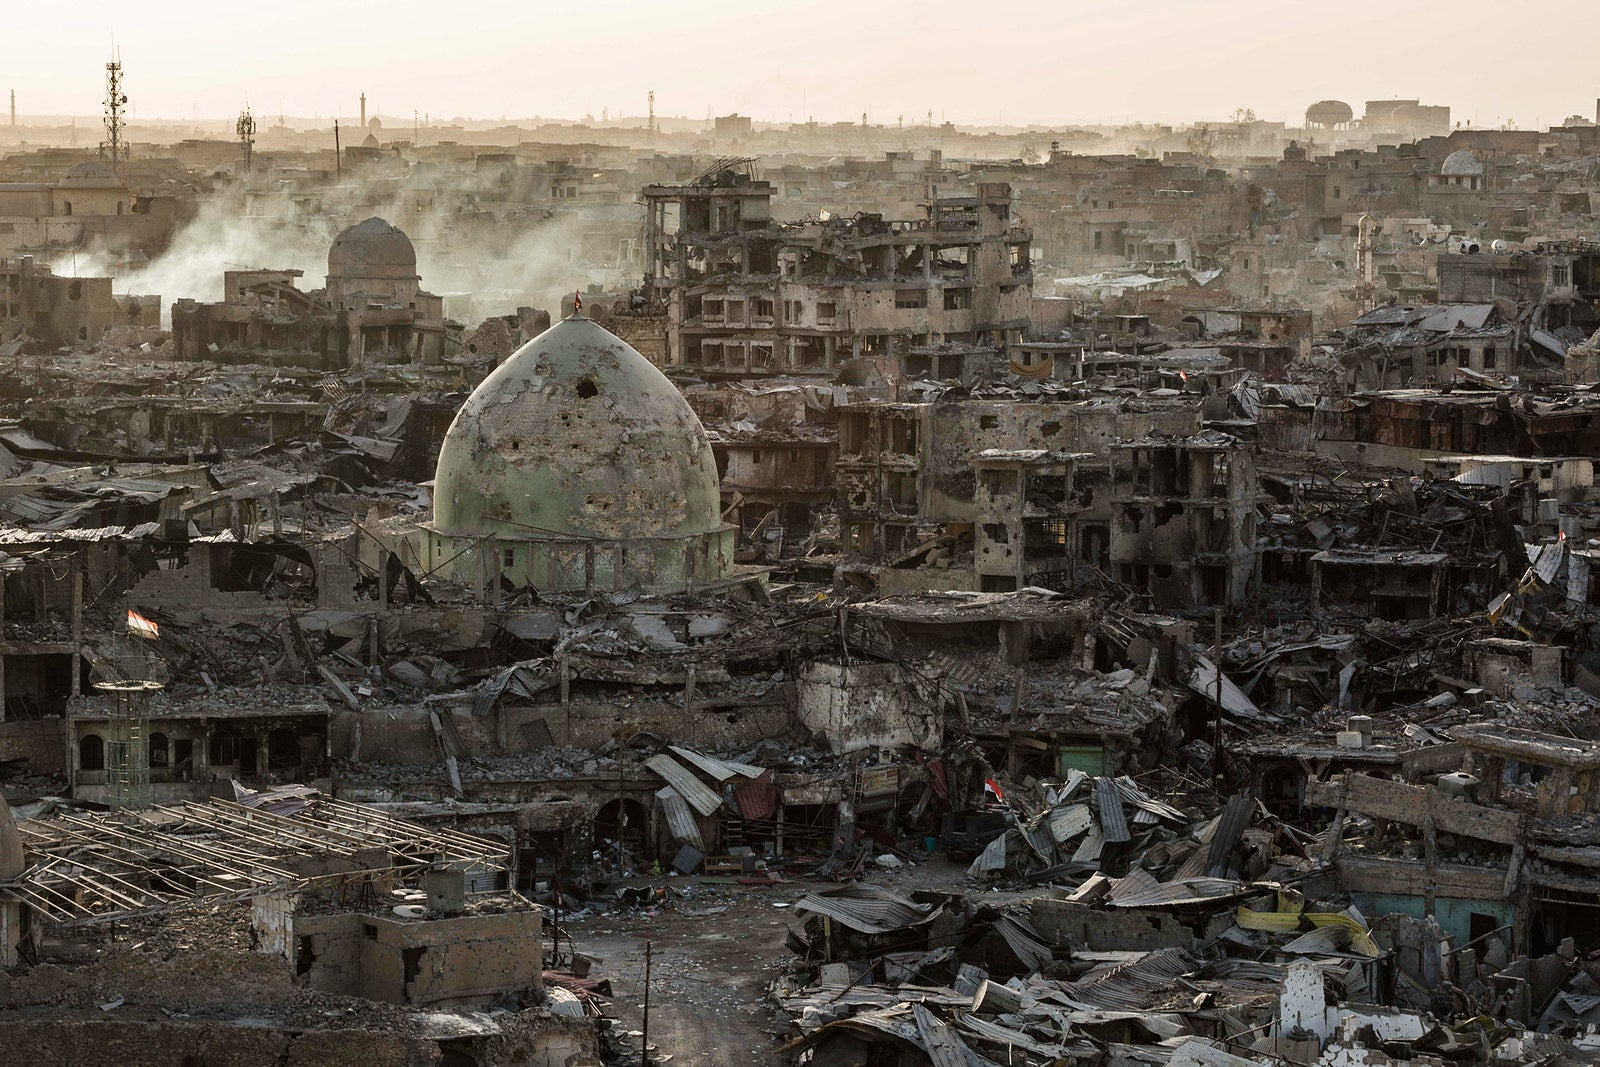 The city of Mosul, Iraq, is seen in ruins following an ongoing conflict to retake the city from ISIS, on July 14.